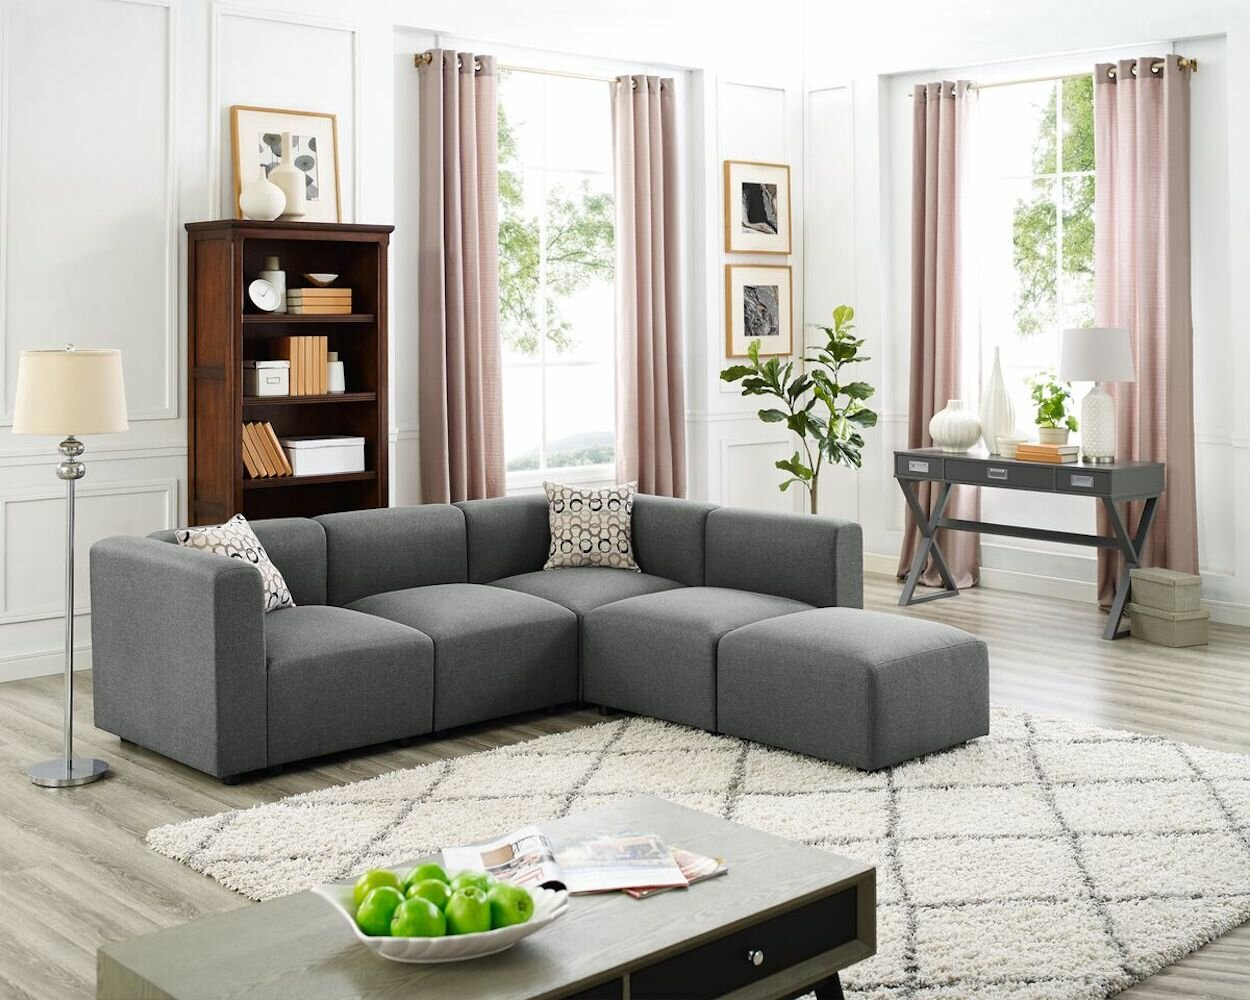 Superb Details About Wrought Studio Kirby Modular Sectional With Ottoman Uwap Interior Chair Design Uwaporg